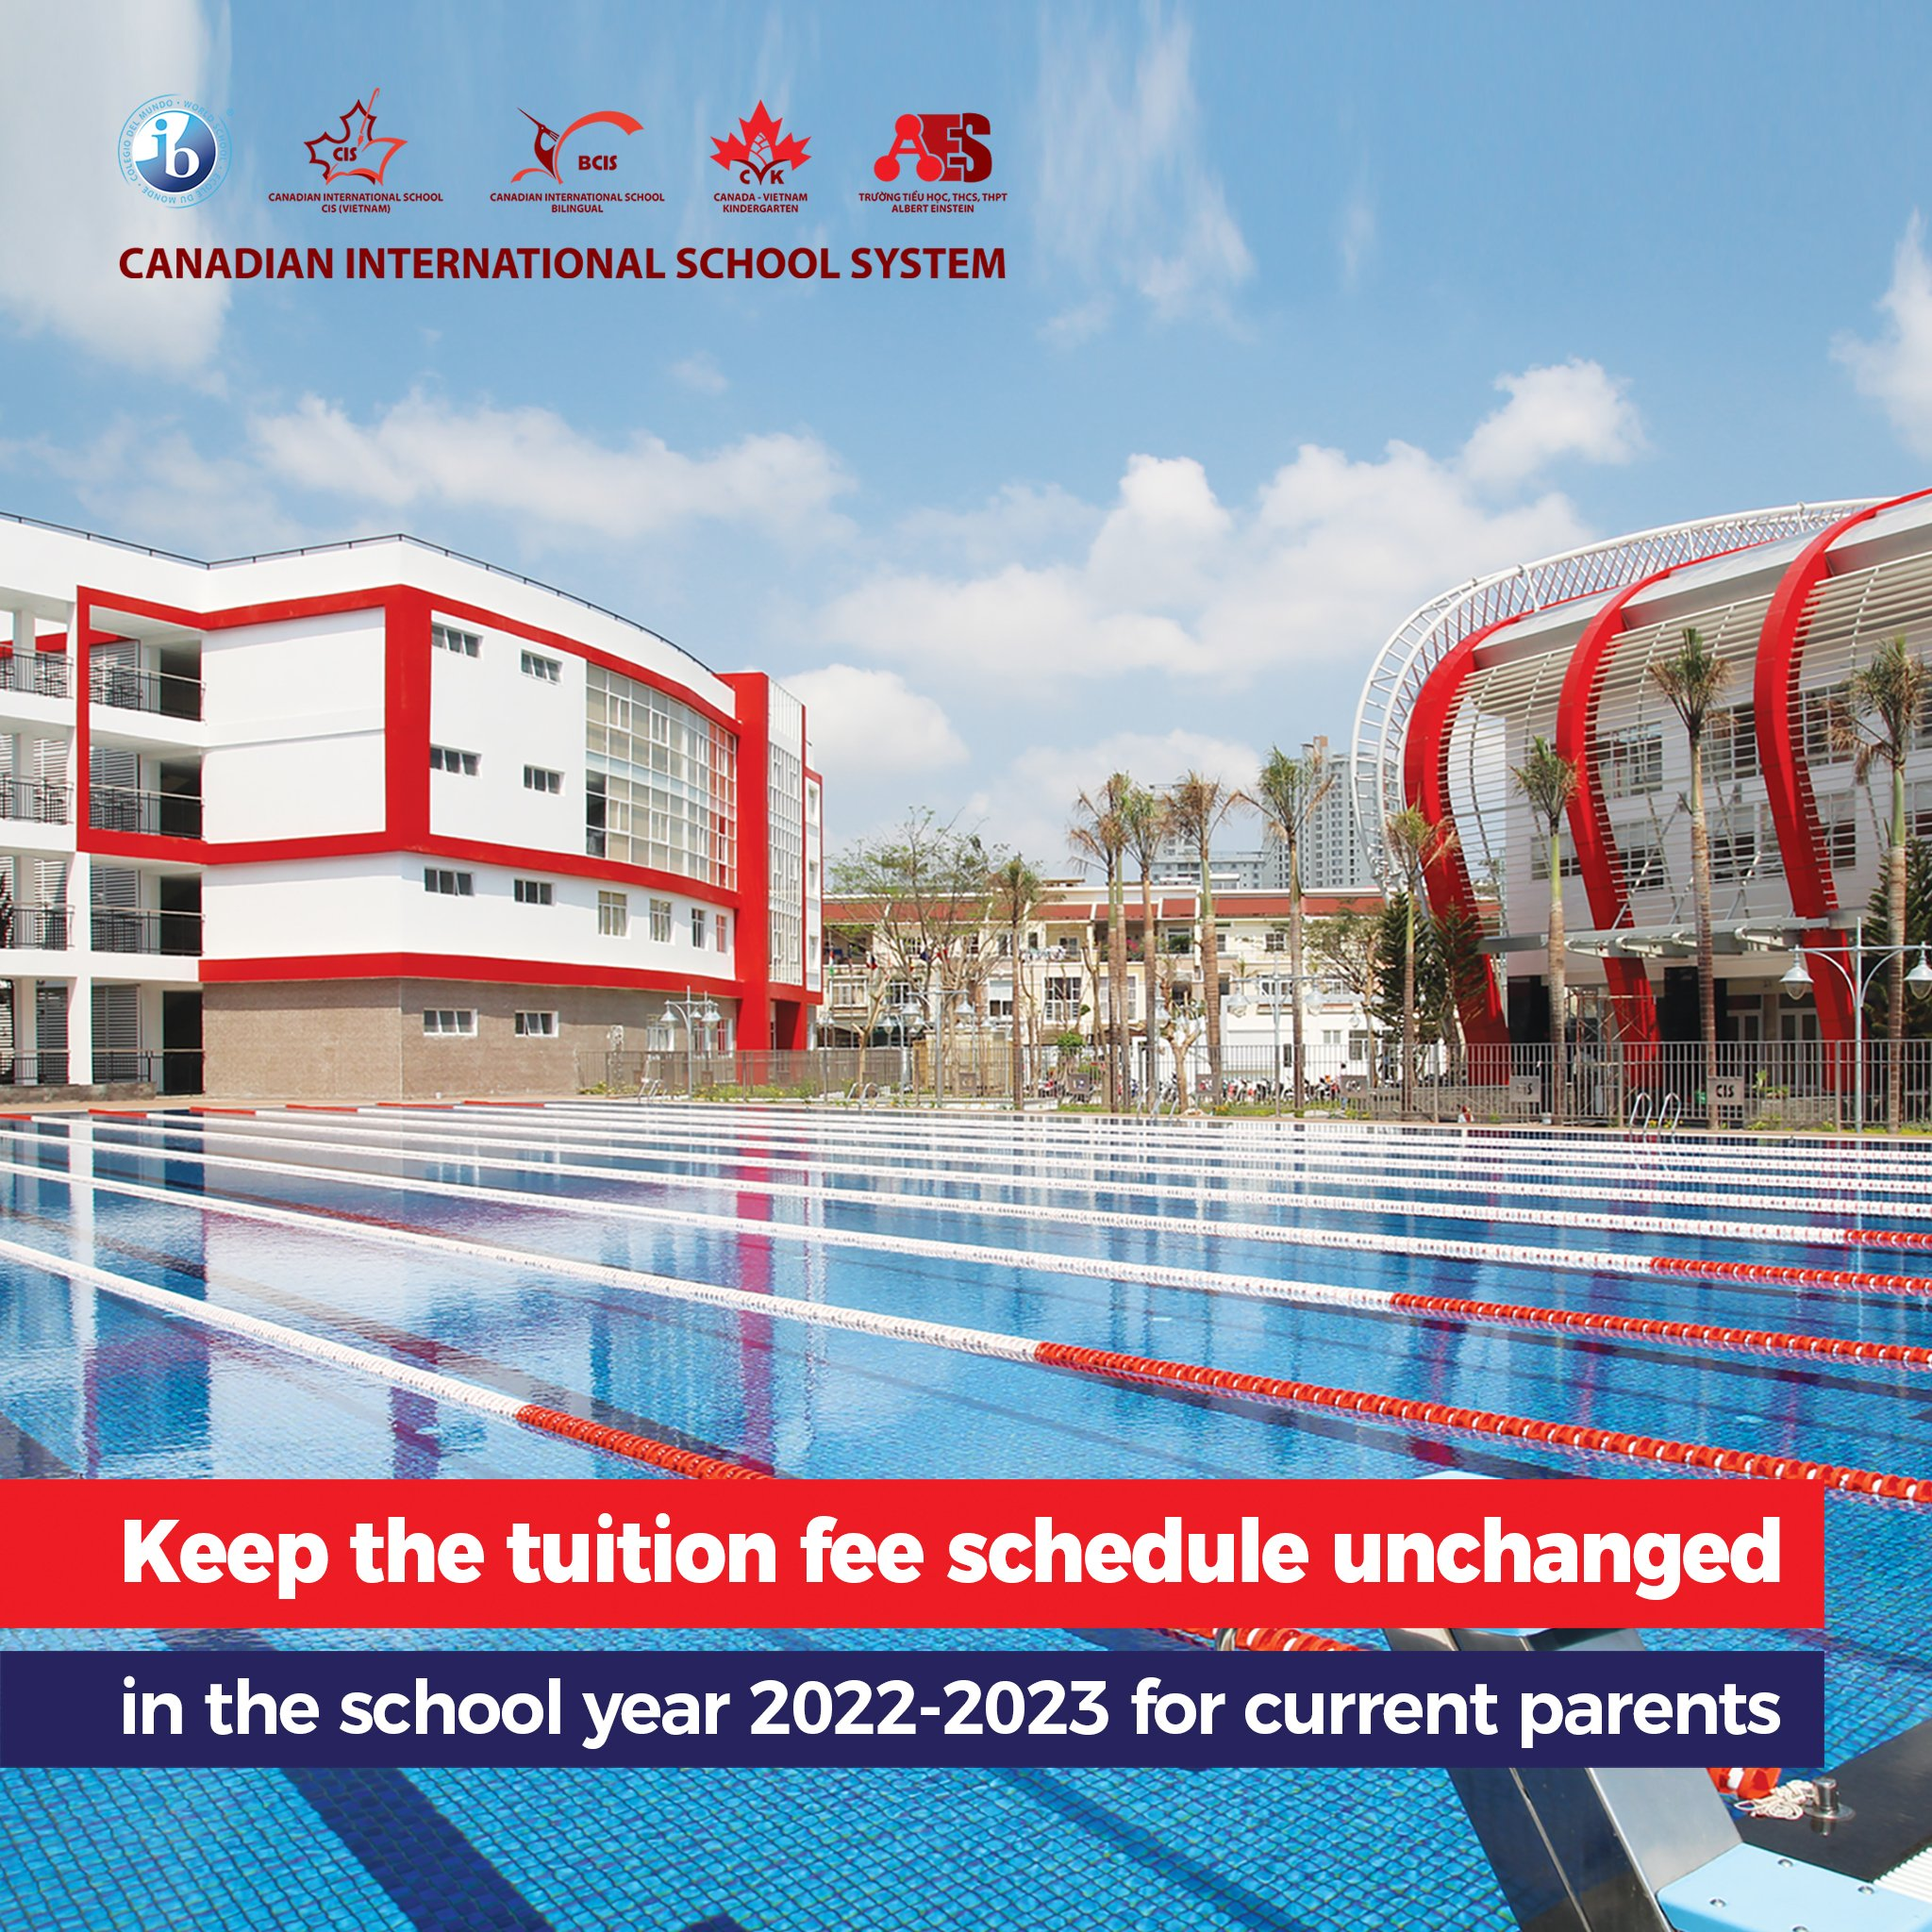 Keep the tuition fees unchanged in the school year 2022-2023 for current parents